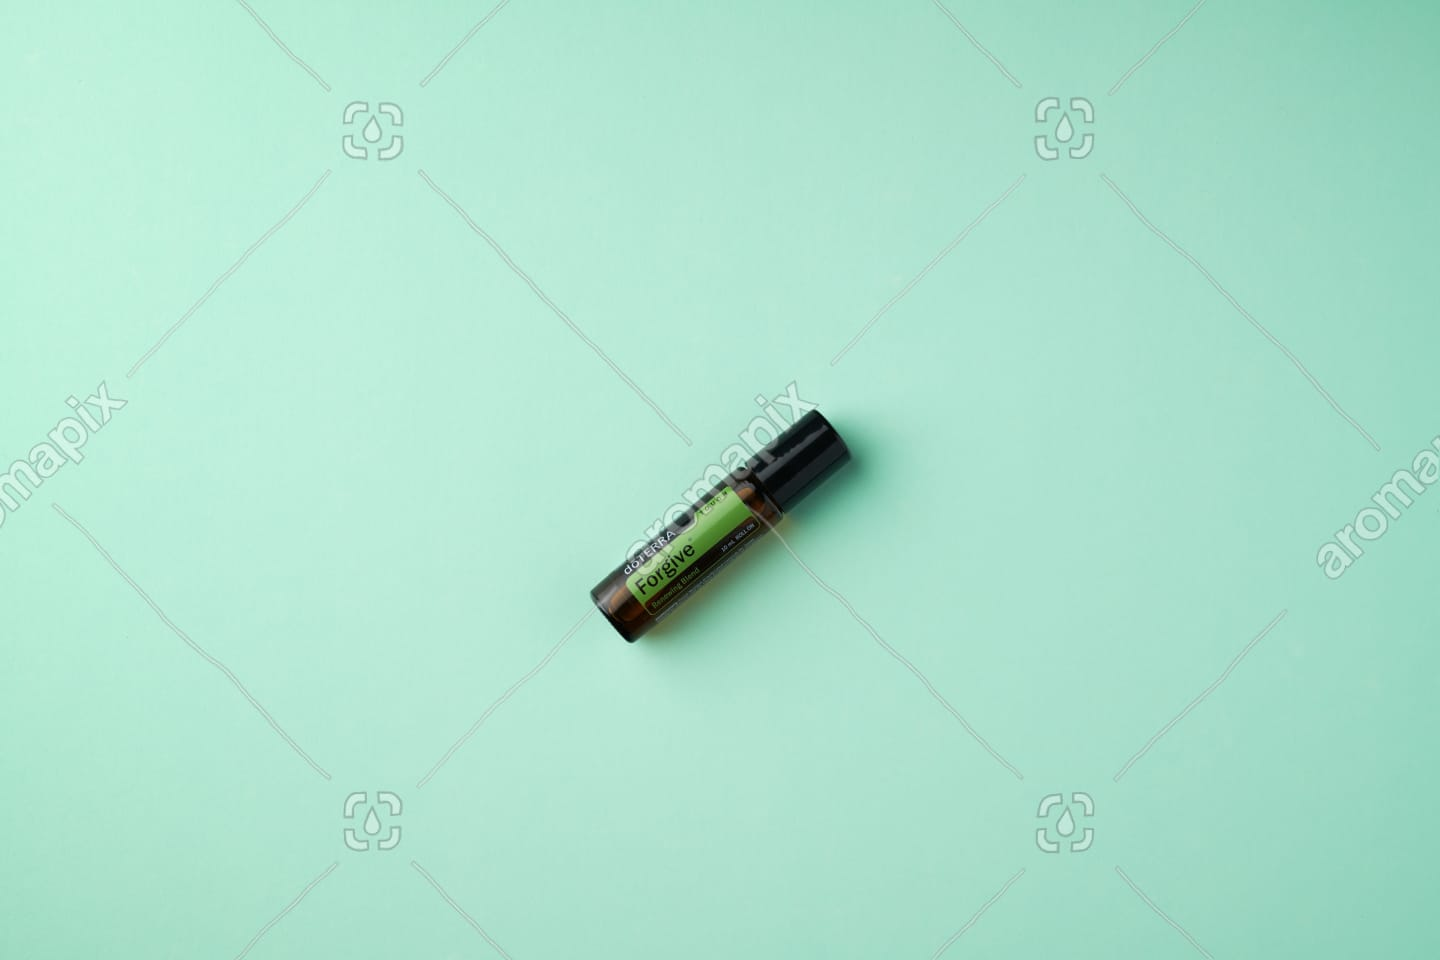 doTERRA Forgive Touch on mint